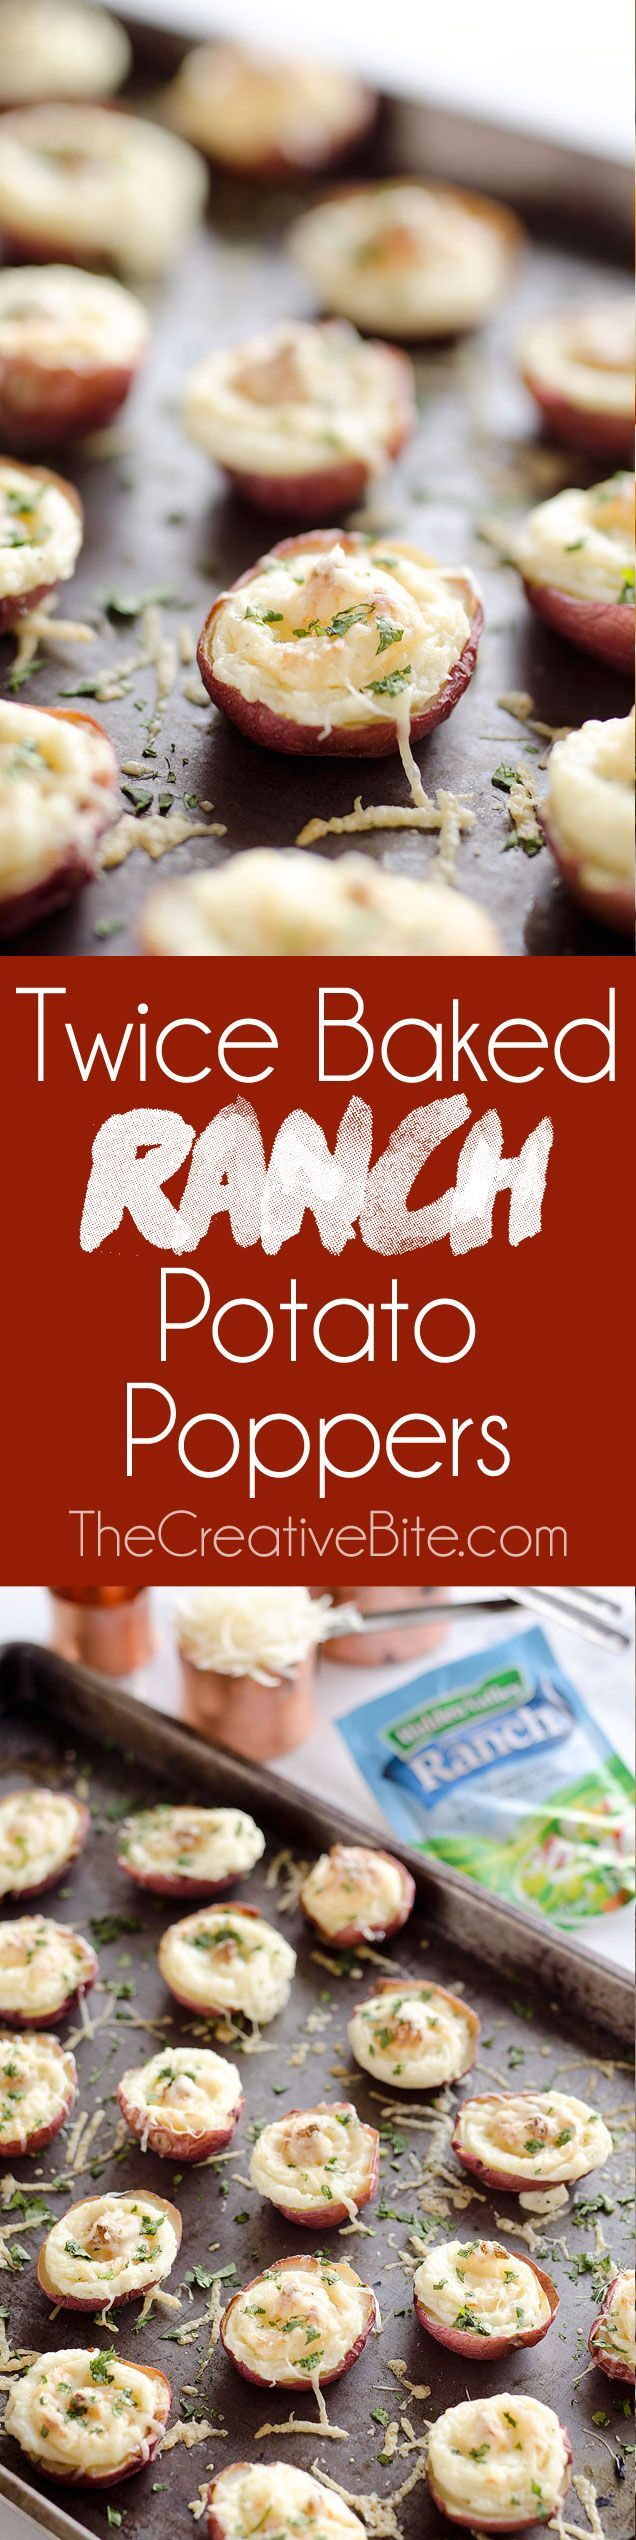 Twice Baked Ranch Potato Poppers are a crowd-pleaser with light and fluffy mashed potatoes mixed with Hidden Valley Ranch seasoning and light sour cream in a potato skin topped with shredded Parmesan for the perfect bite-sized appetizer! #Vegetarian #Appetizer #Light